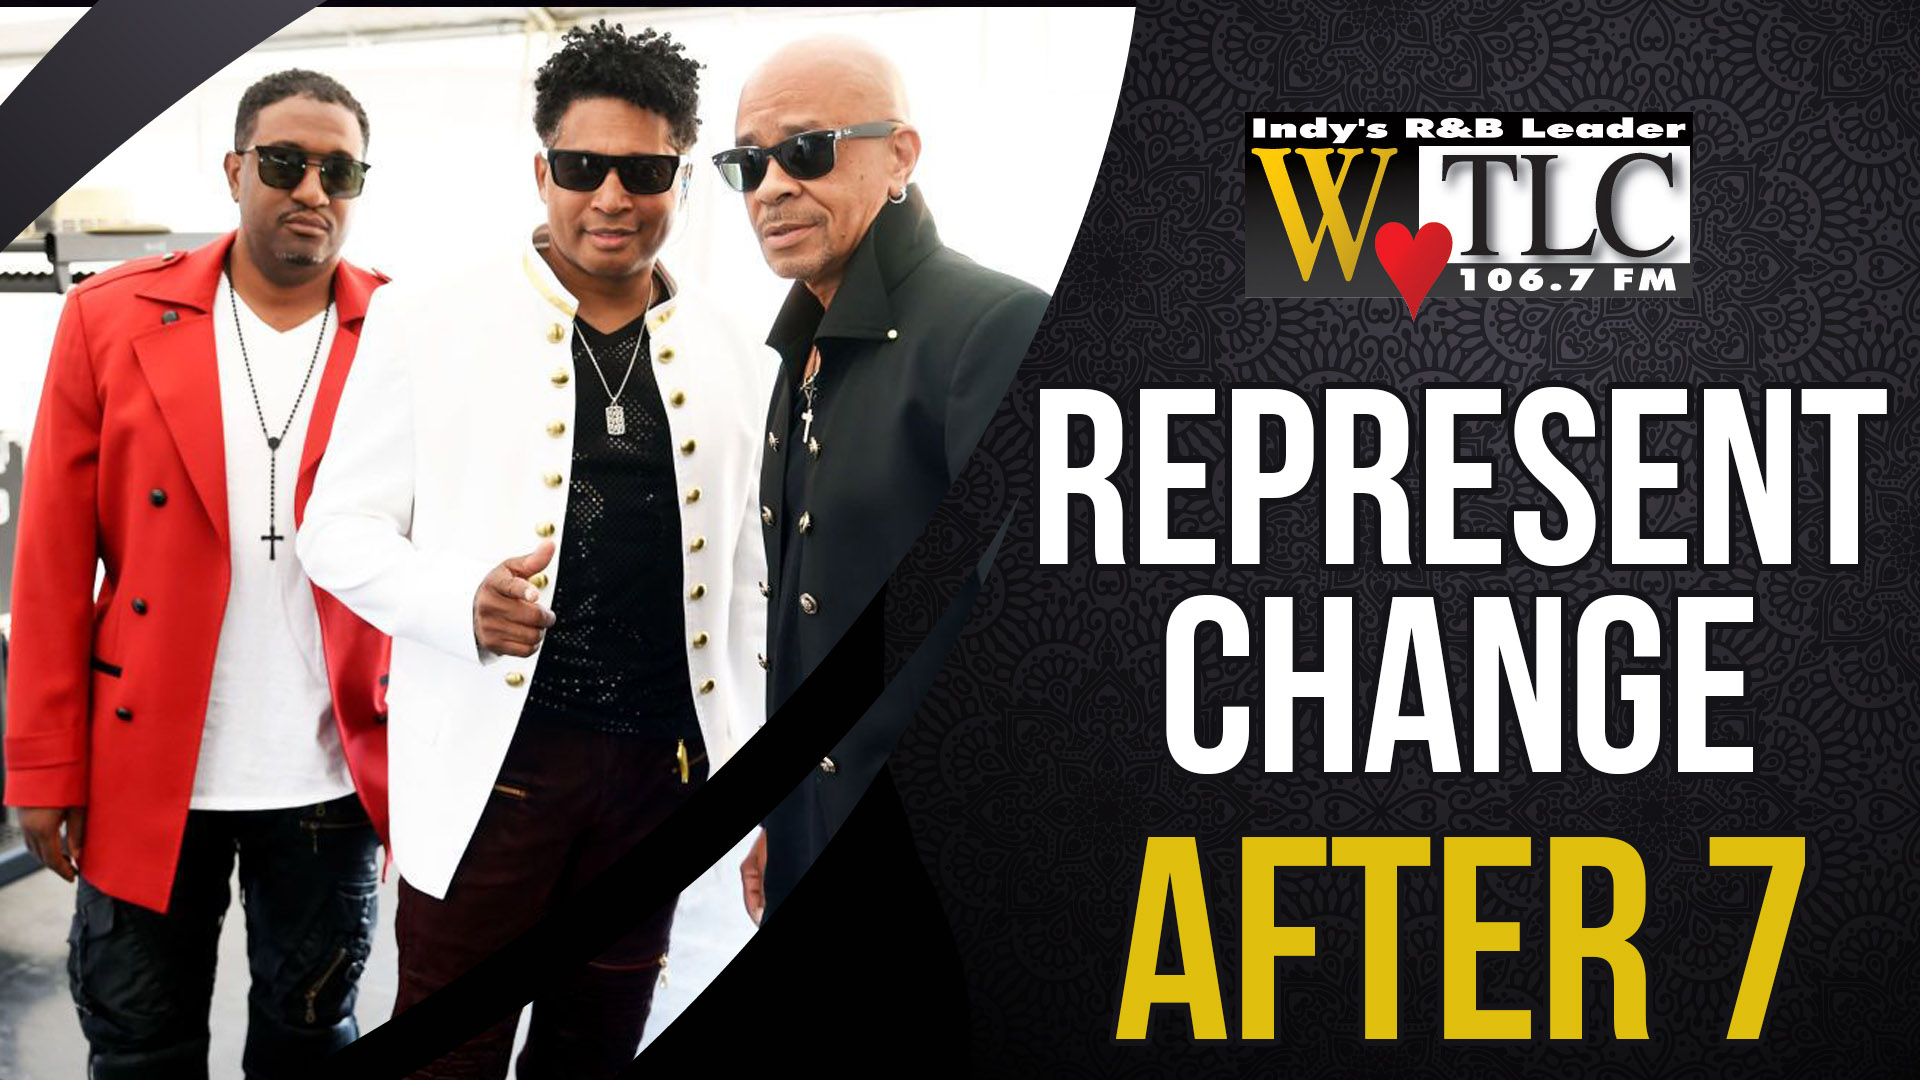 Represent Change: After 7 (WTLC)